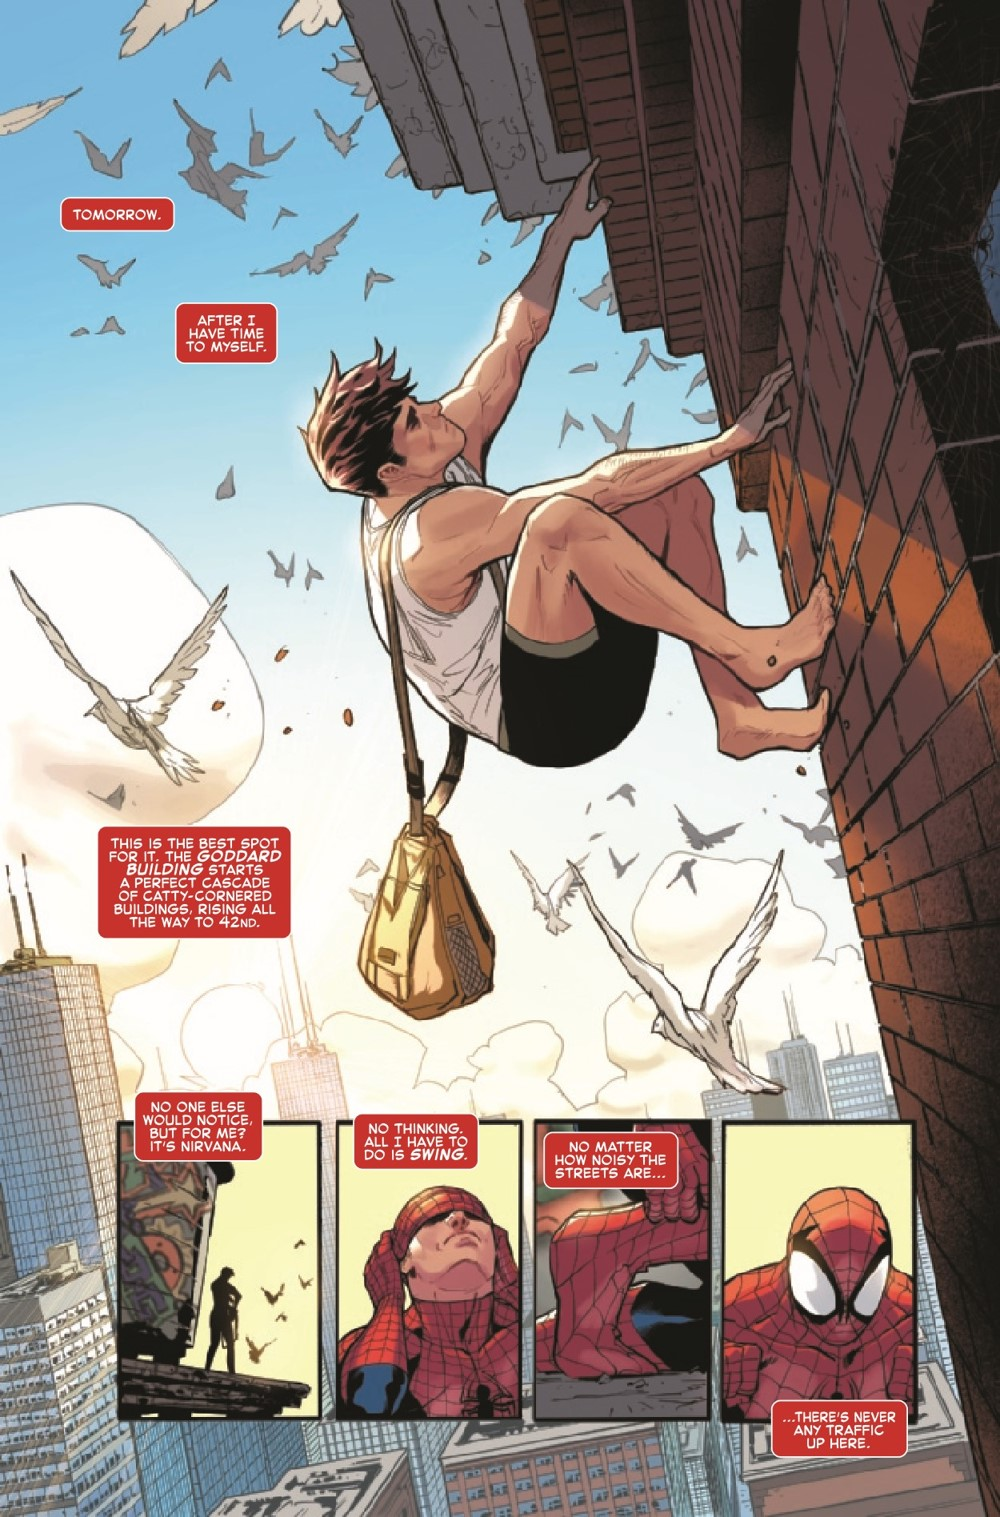 ASM2018075_Preview-6 ComicList Previews: AMAZING SPIDER-MAN #75